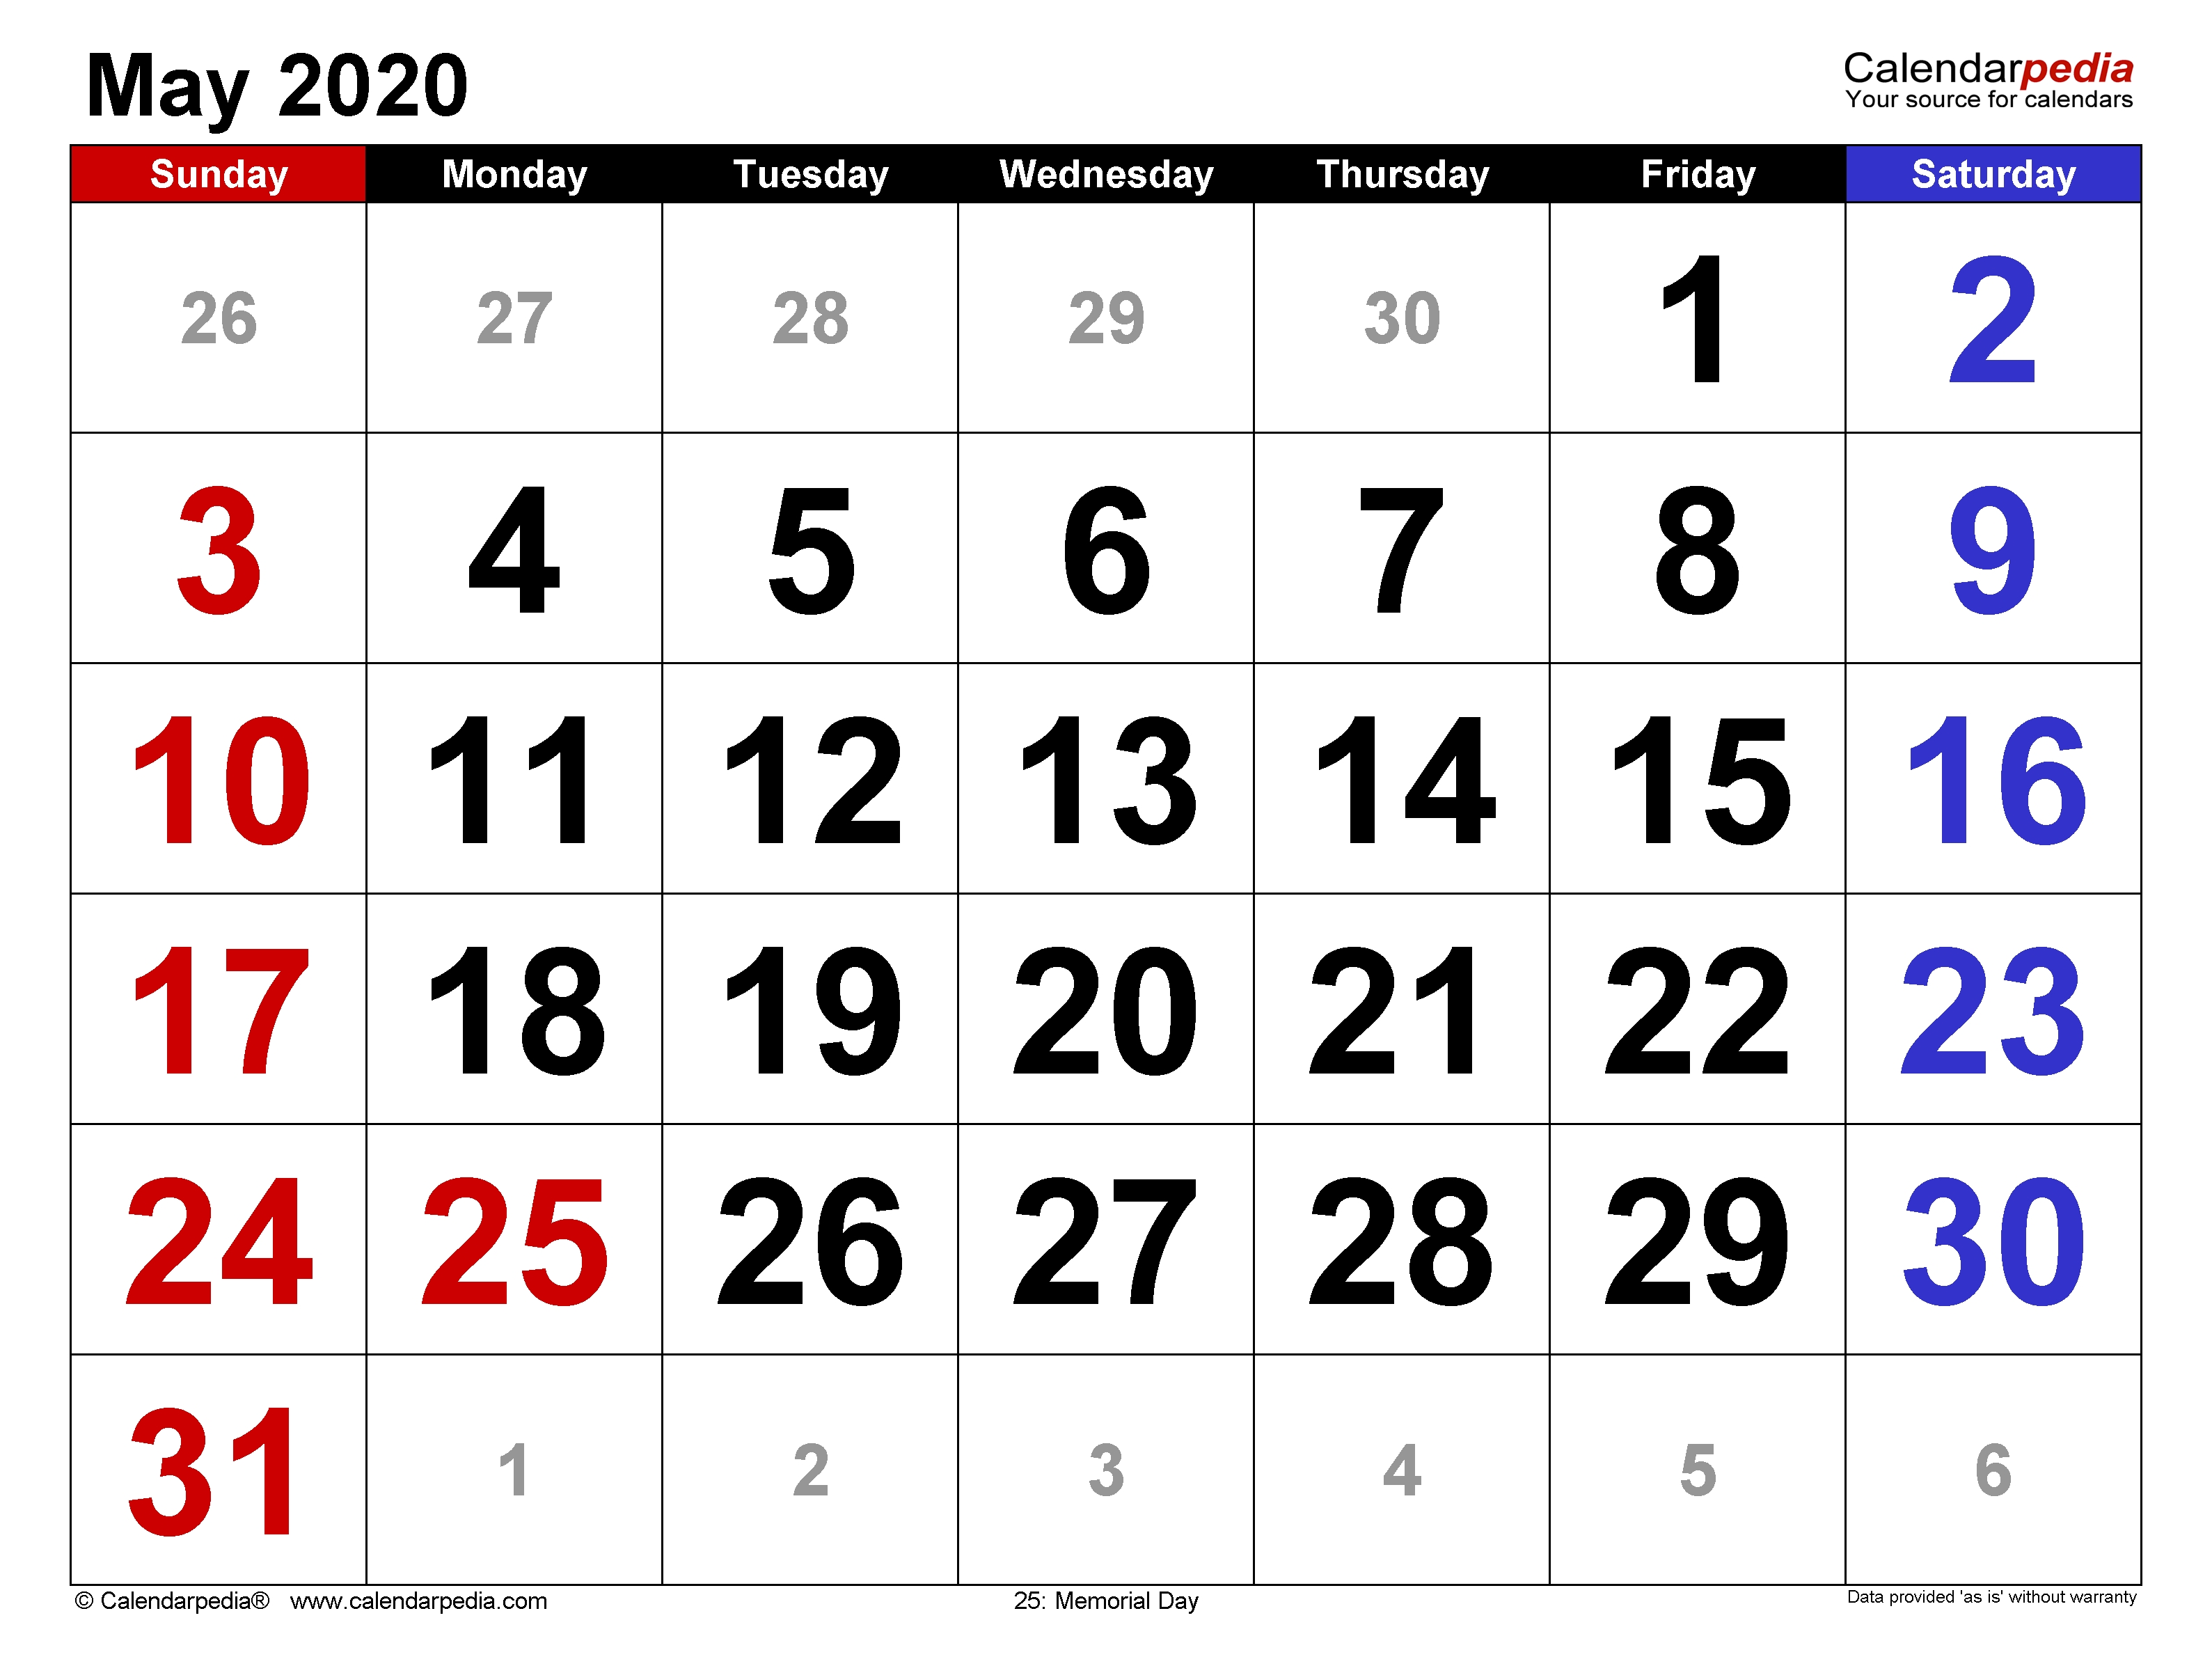 May 2020 - Calendar Templates For Word, Excel And Pdf